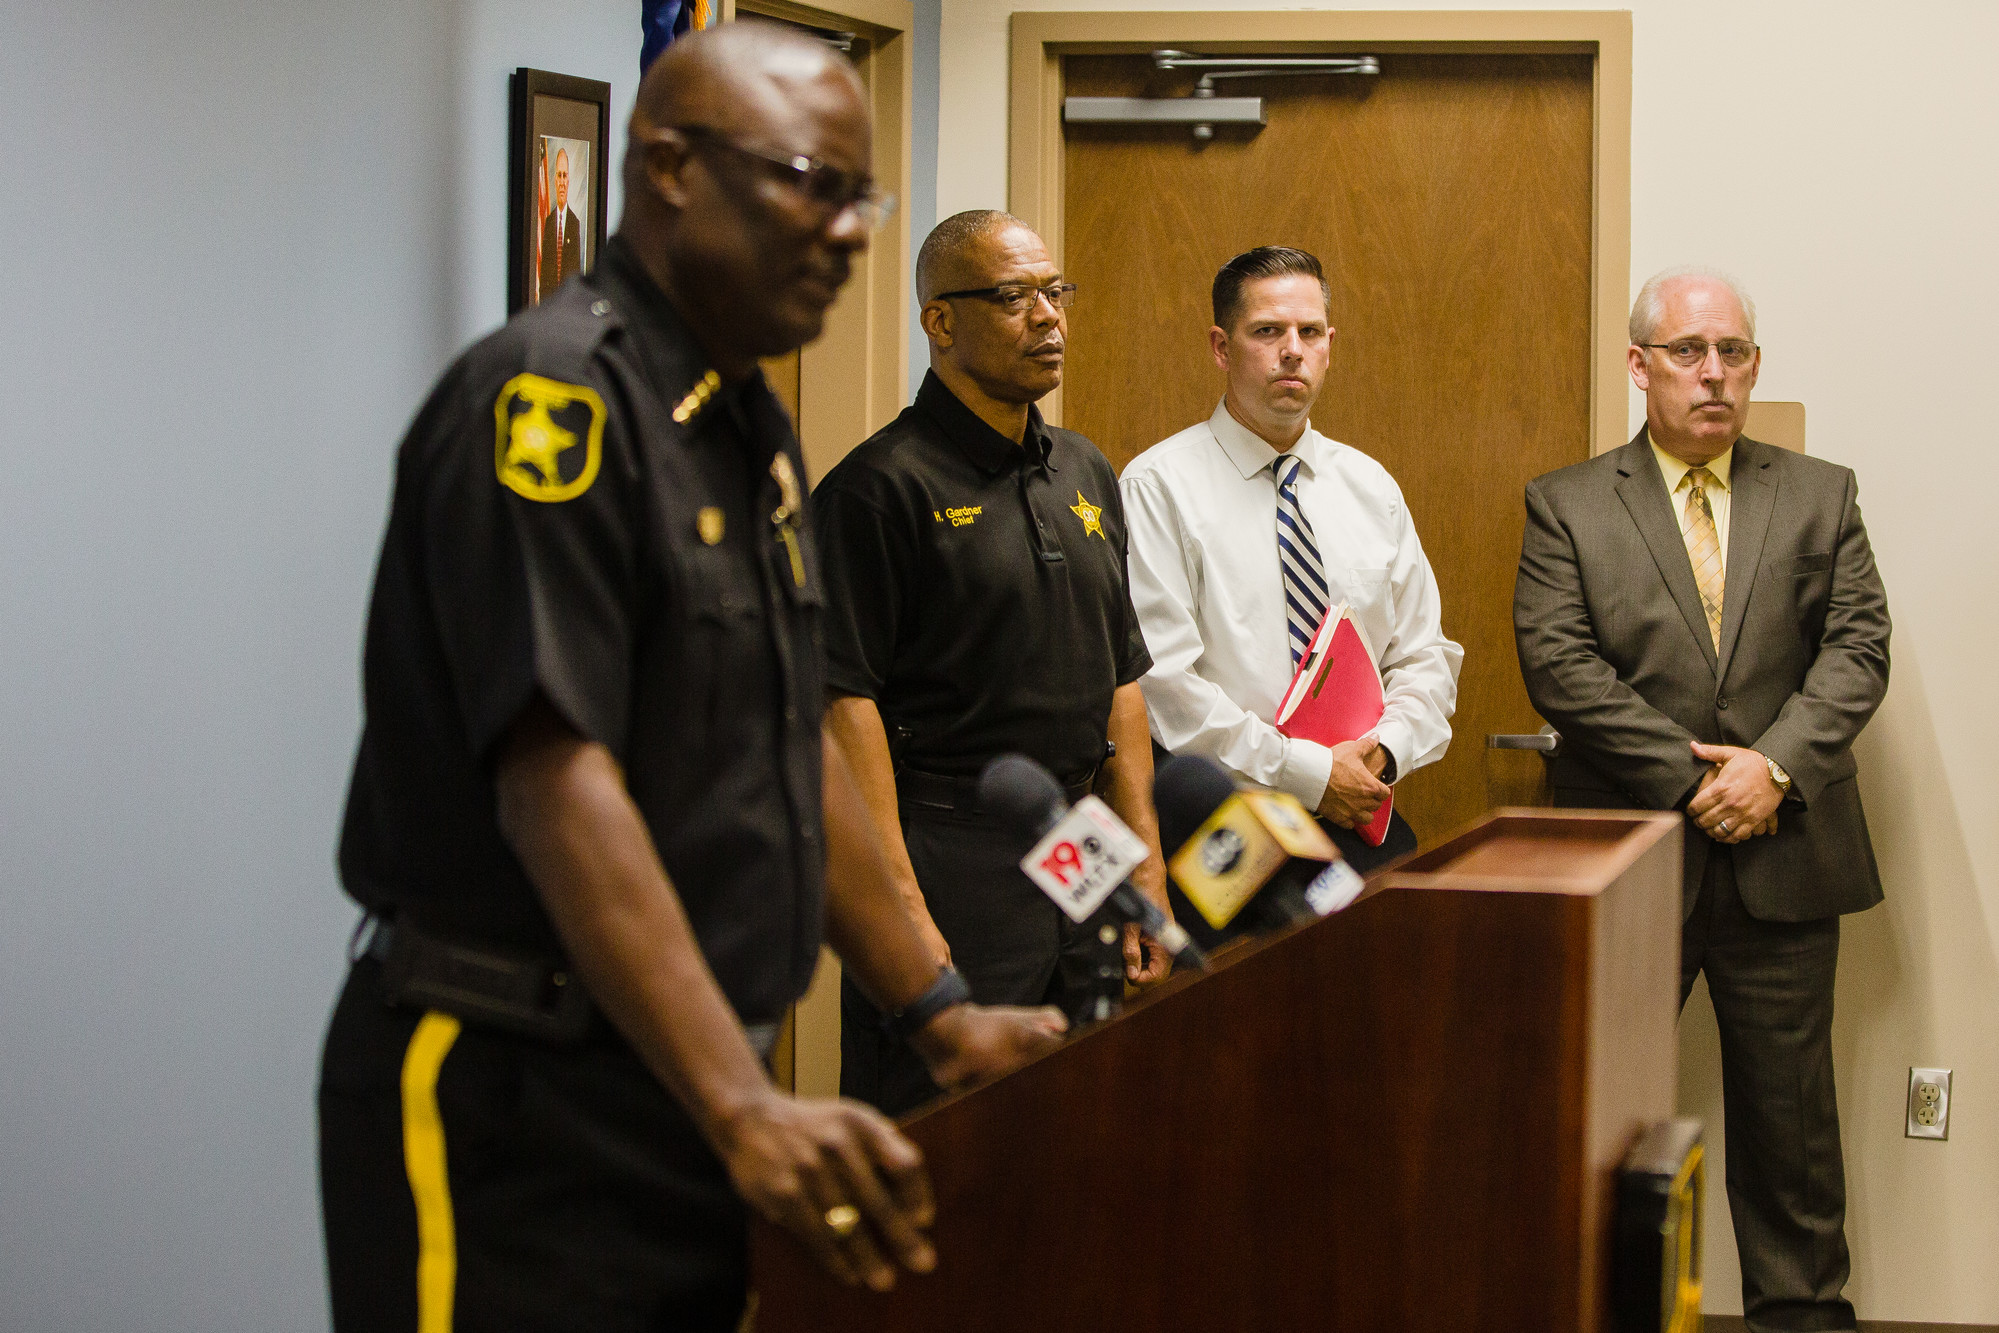 Sumter County Sheriff Anthony Dennis addresses media Monday as investigators look on during a press conference about a suspect who fled the area after a fatal shooting at a Sumter auto body repair shop.